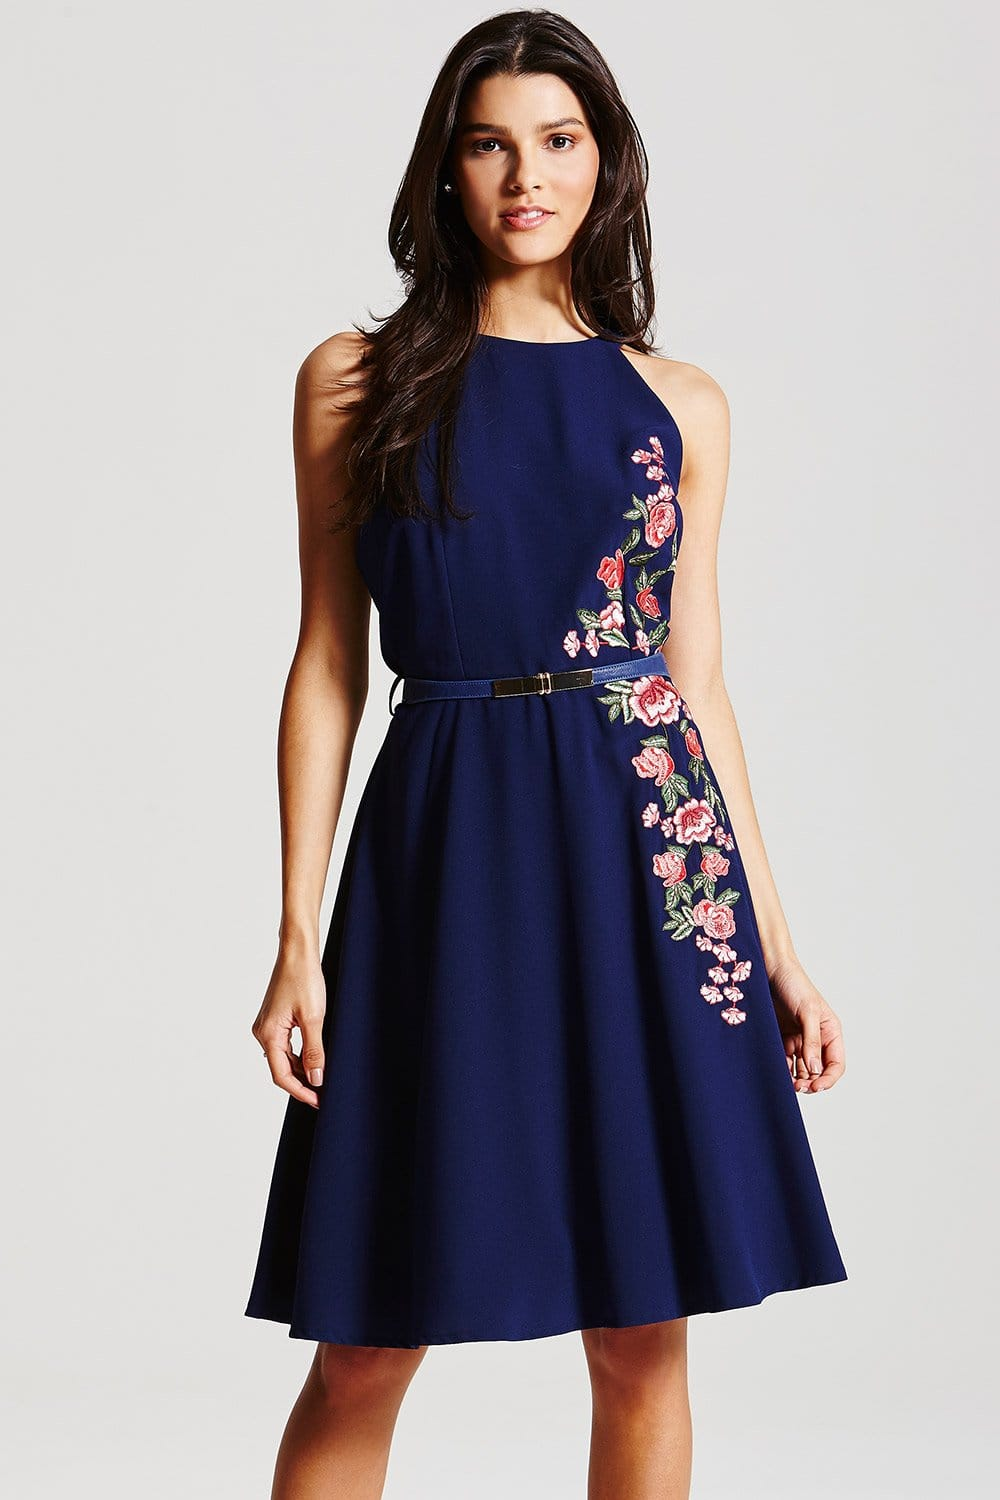 Navy Floral Embroidered Fit And Flare Dress From Little